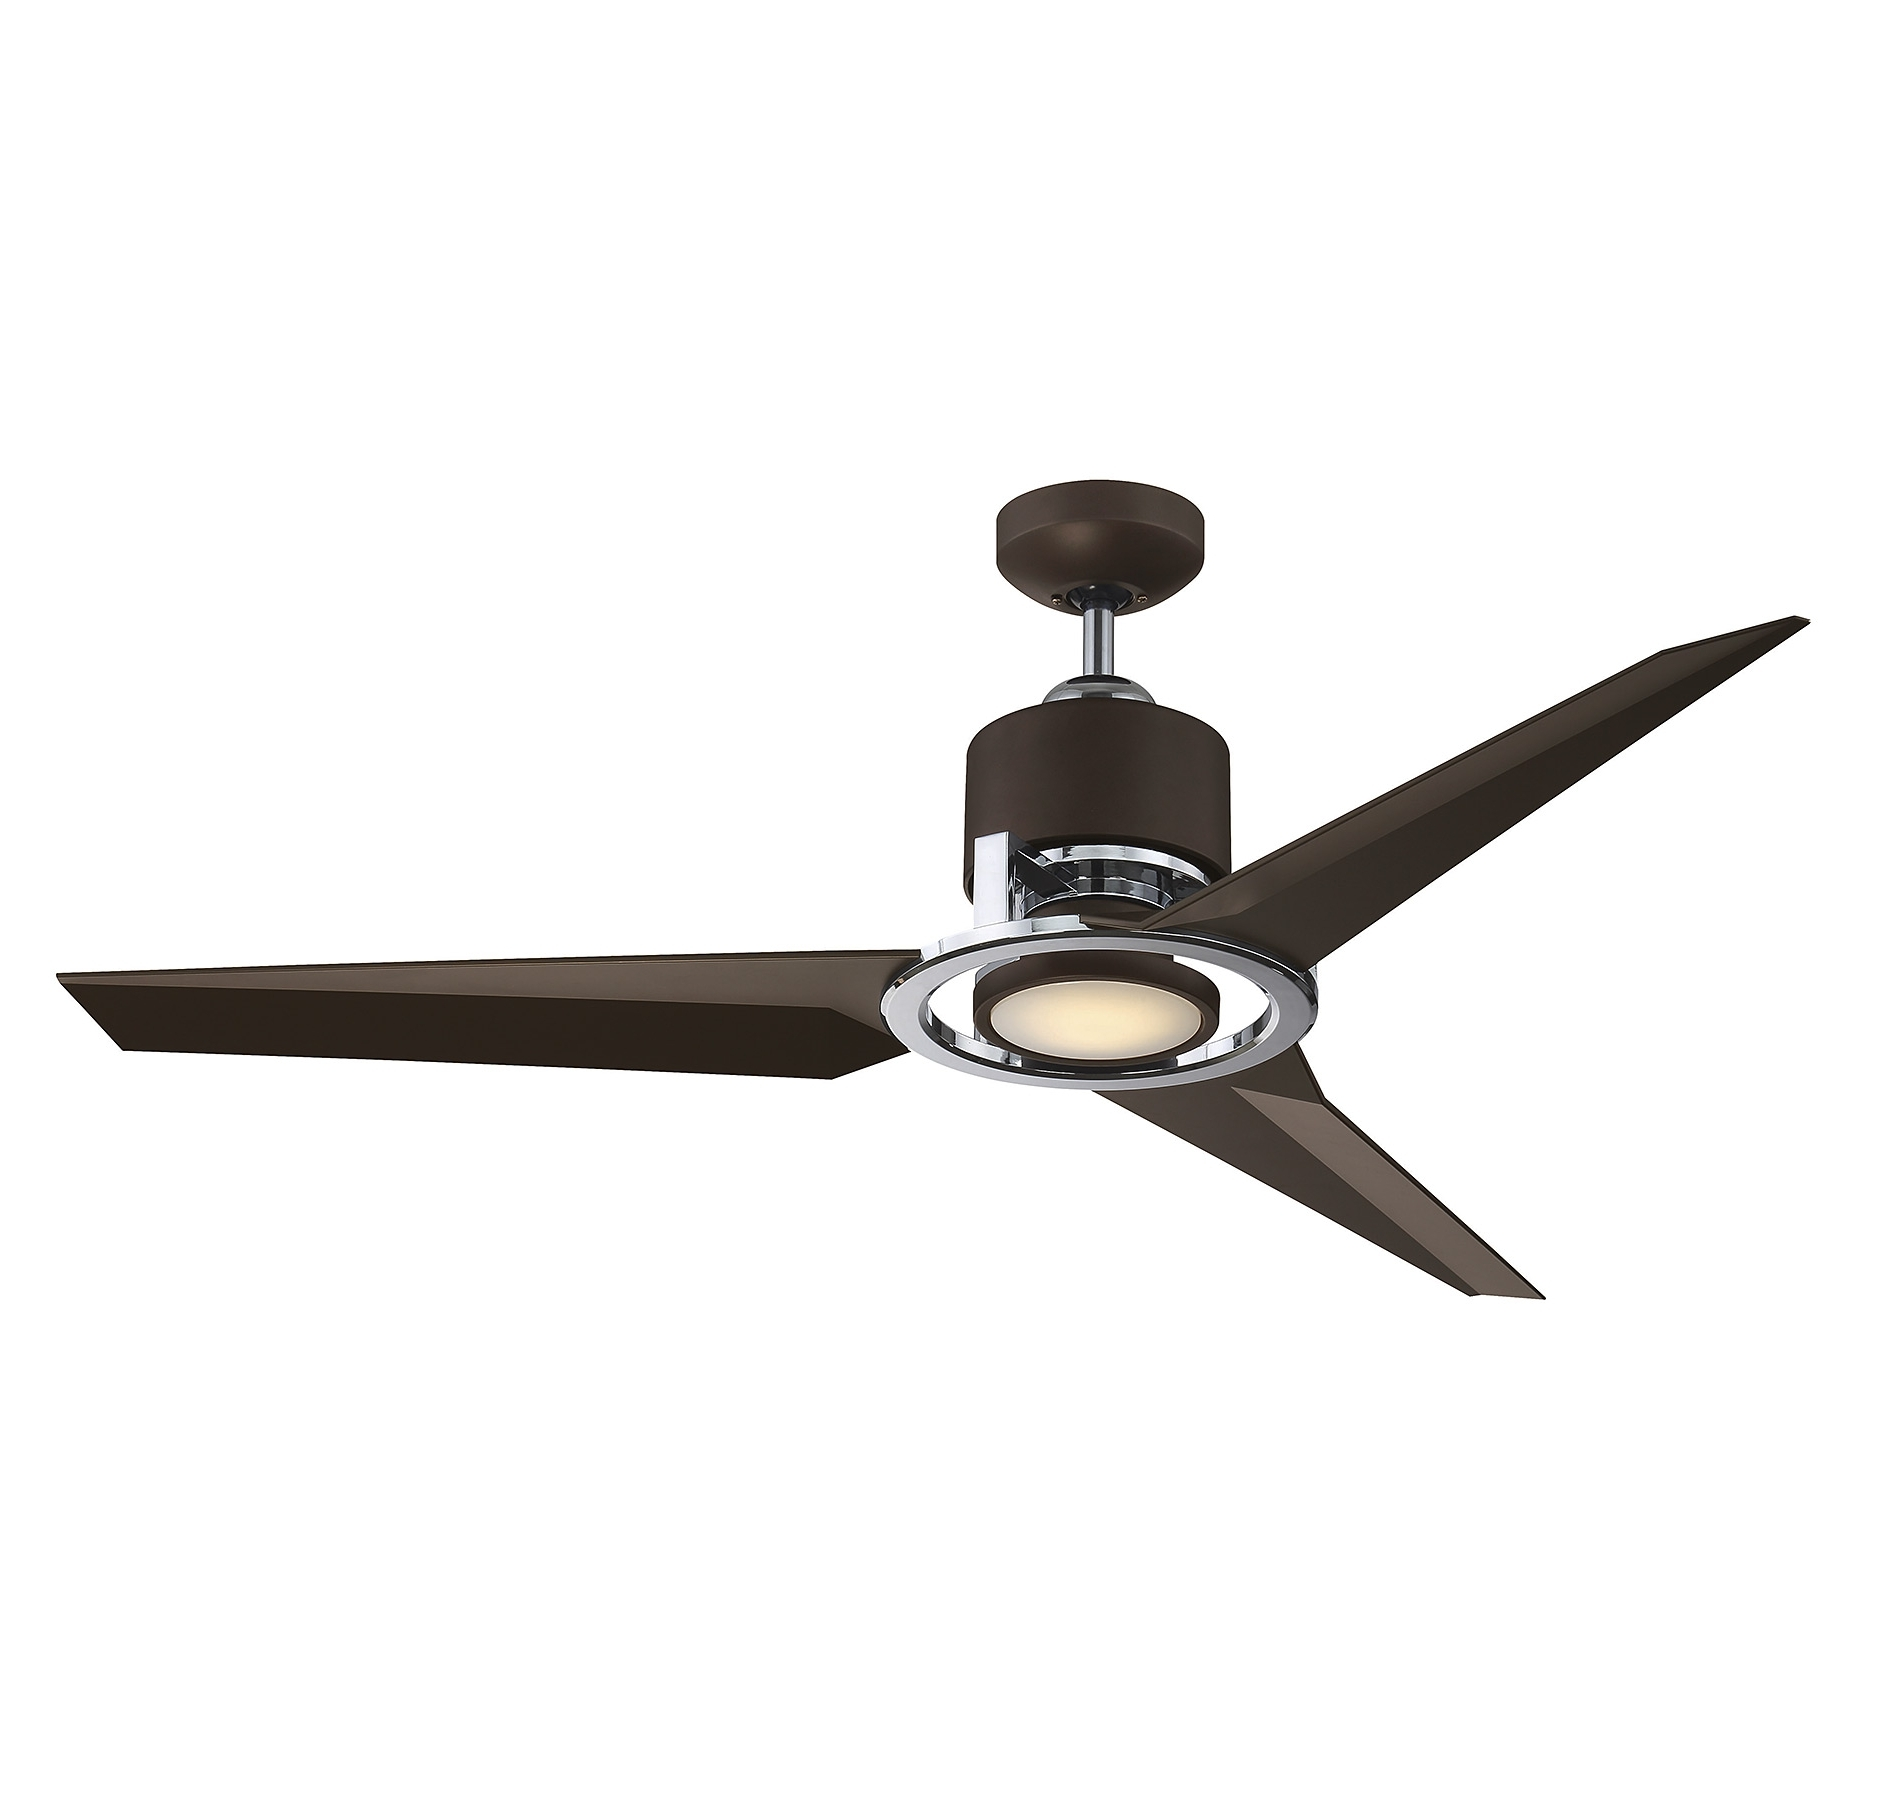 Current 42 Inch Outdoor Ceiling Fans With Lights In 3 Blade Outdoor Ceiling Fan Lighting And Ceiling Fans, 3 Blade (View 5 of 20)